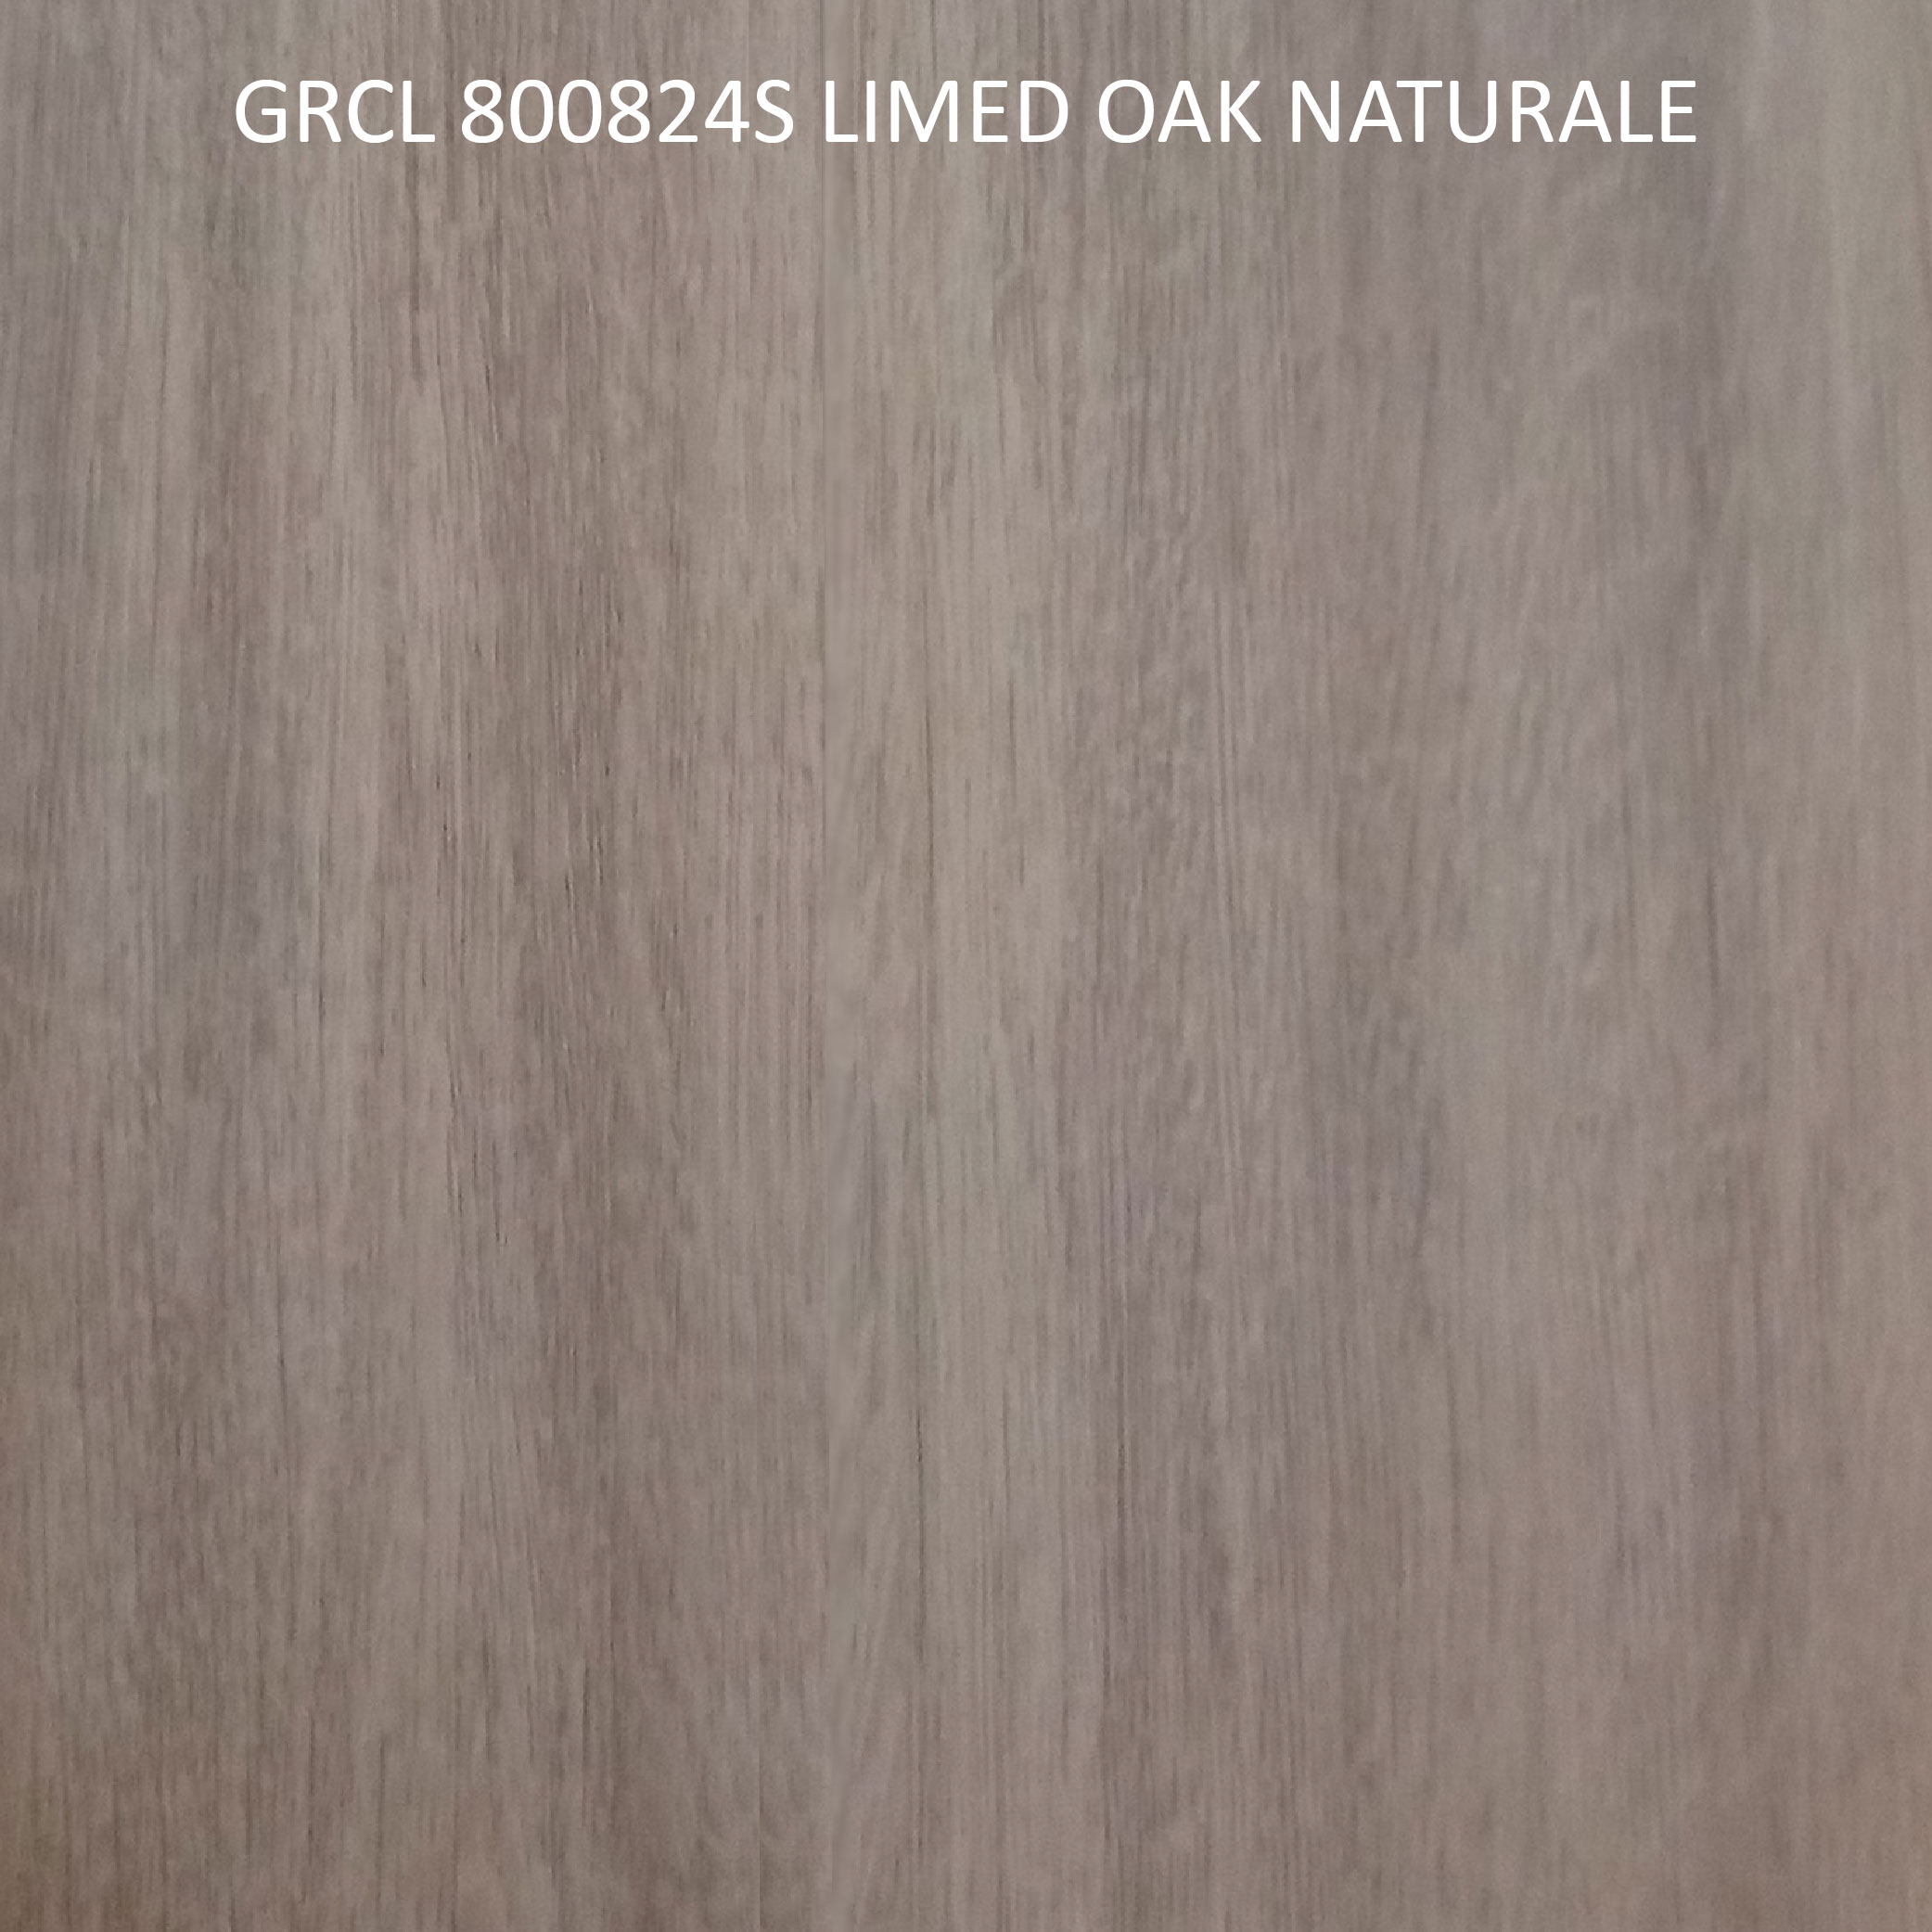 GRCL 800824S LIMED OAK NATURALE